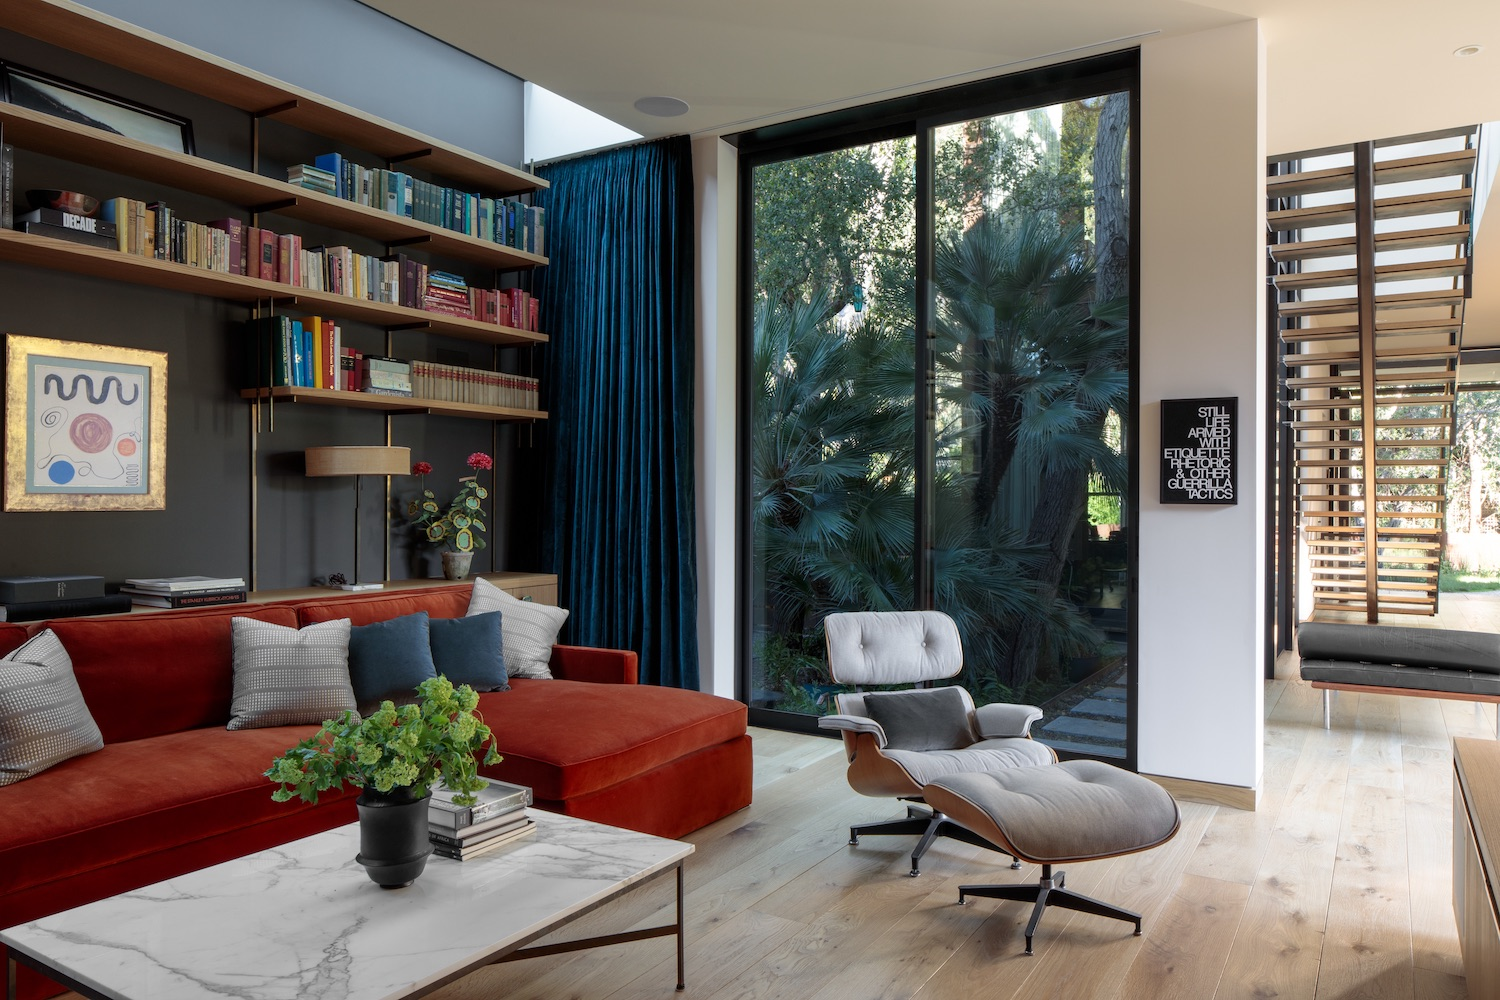 cozy living area with red sofa